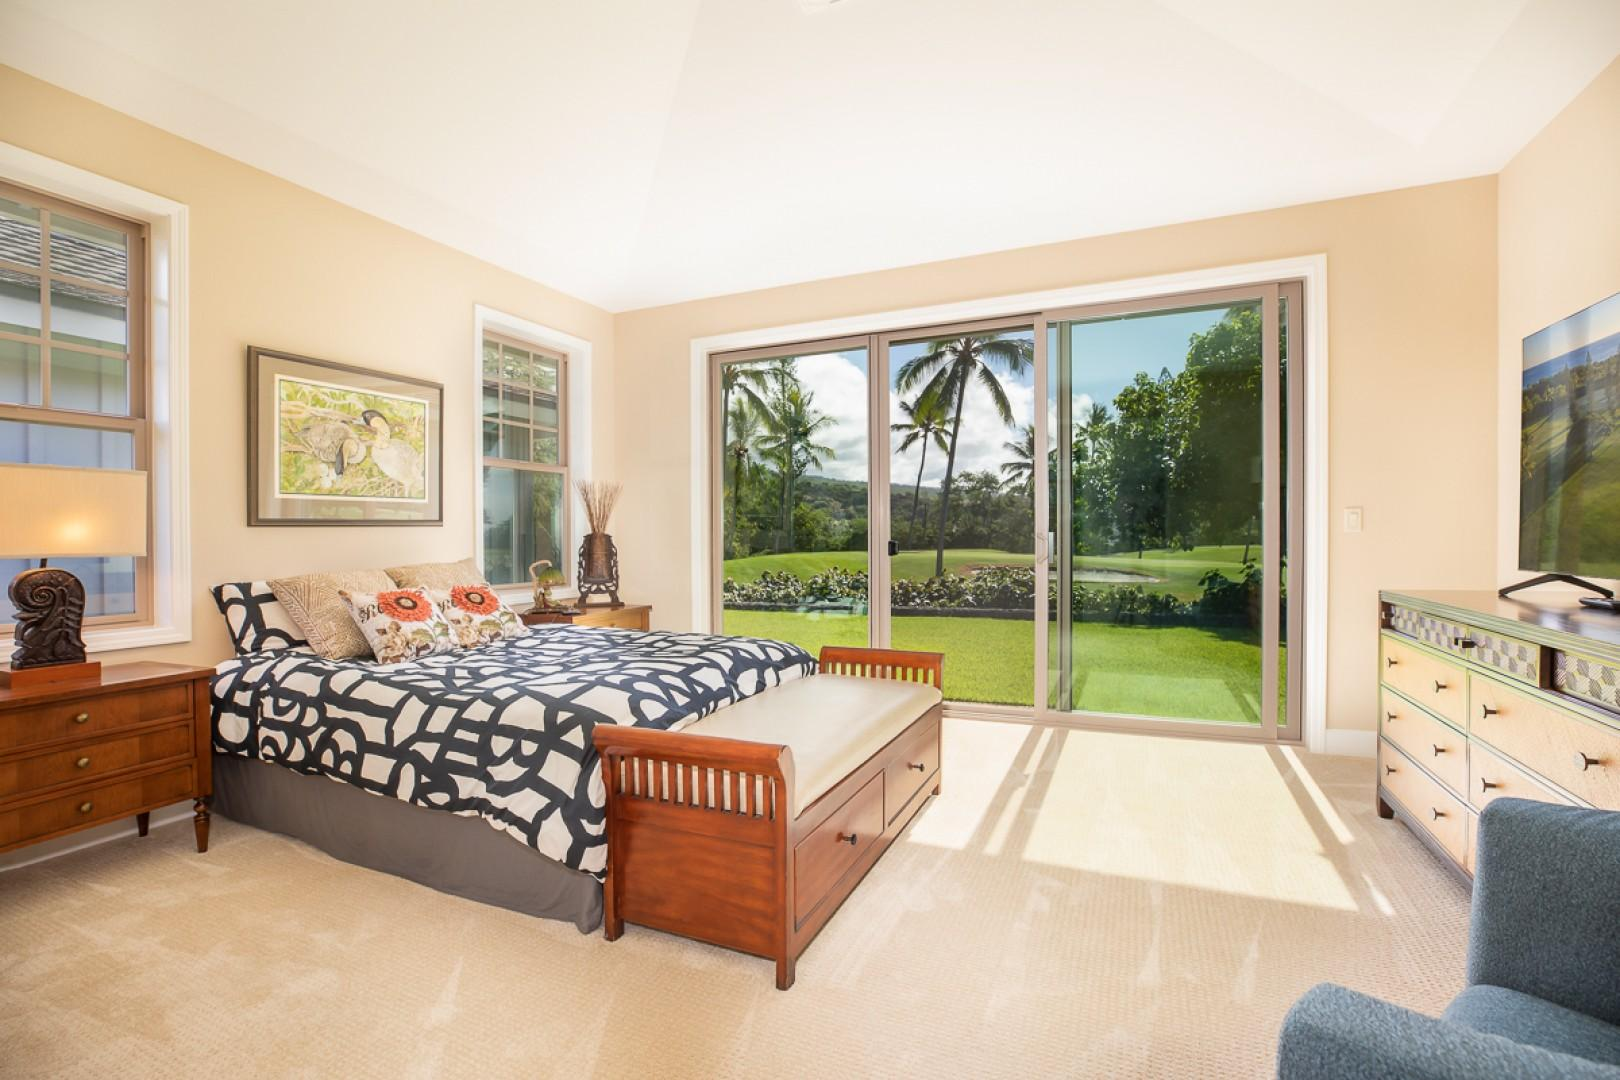 Spacious Master Bedroom with Golf course views and large ensuite